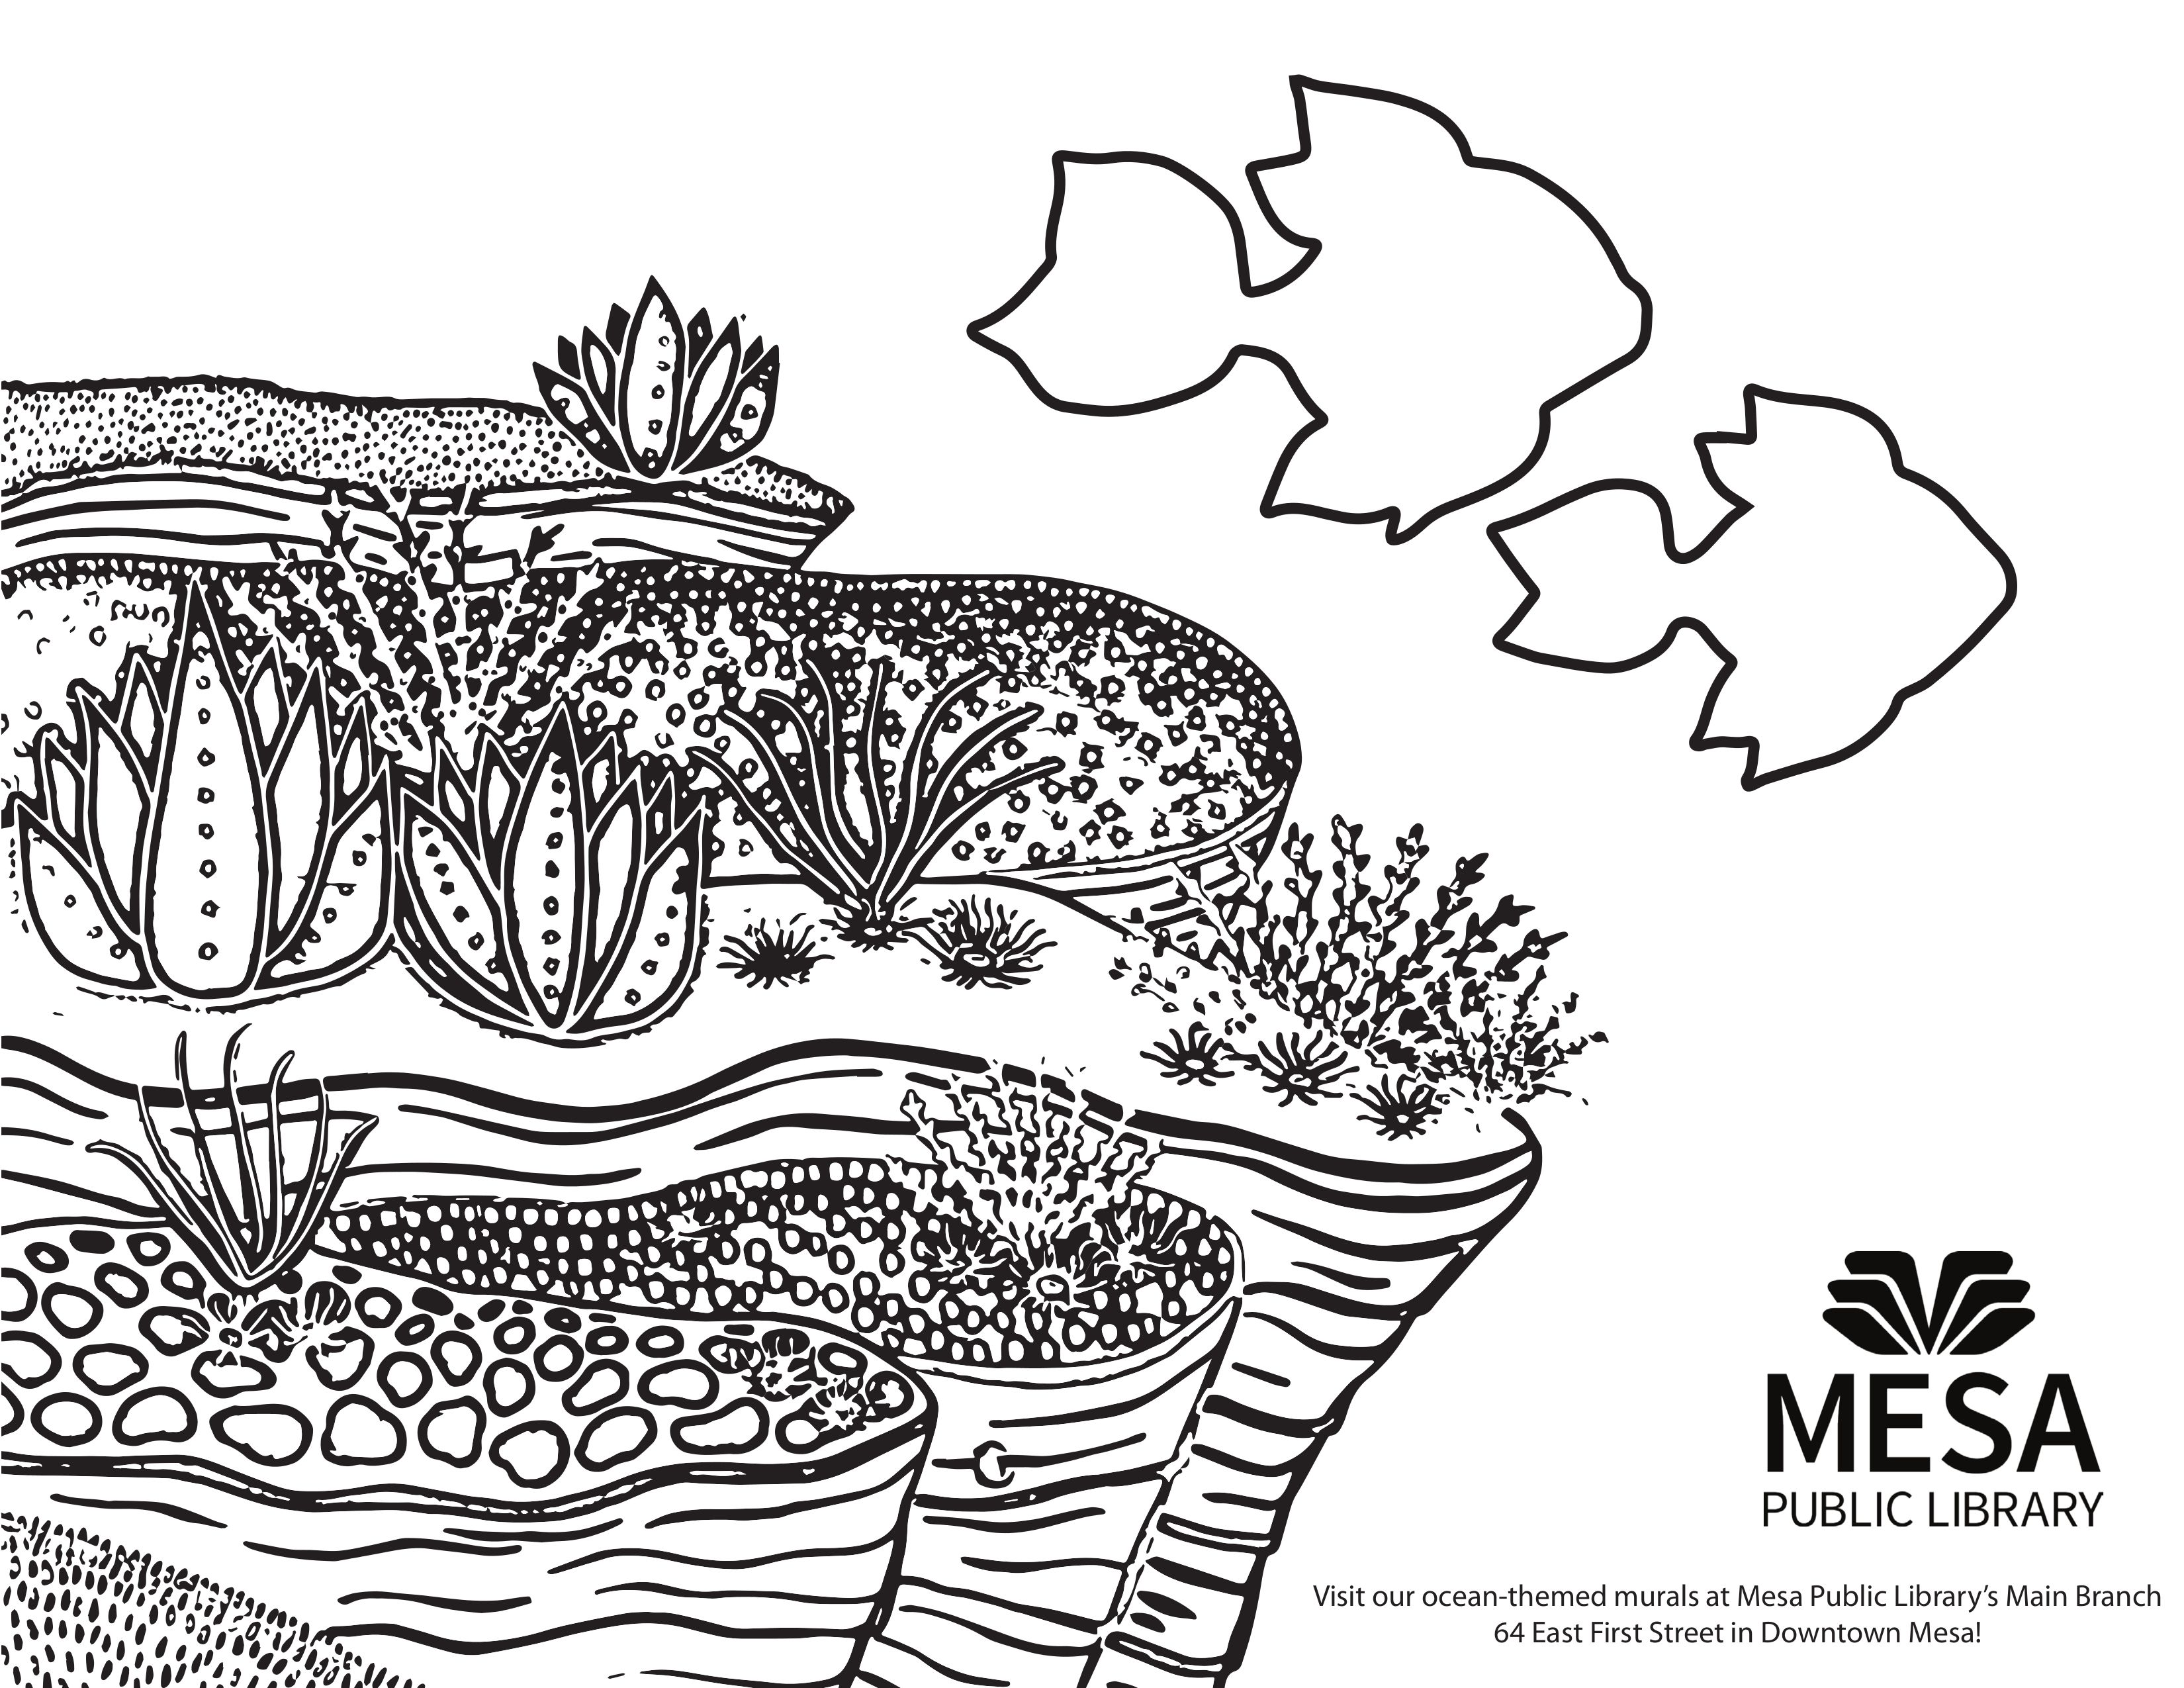 Ocean Floor Printable Coloring Sheet Based On The Murals In The Children S Room Of The Main Branch Mesa Public Library Printable Coloring Sheets Childrens Room